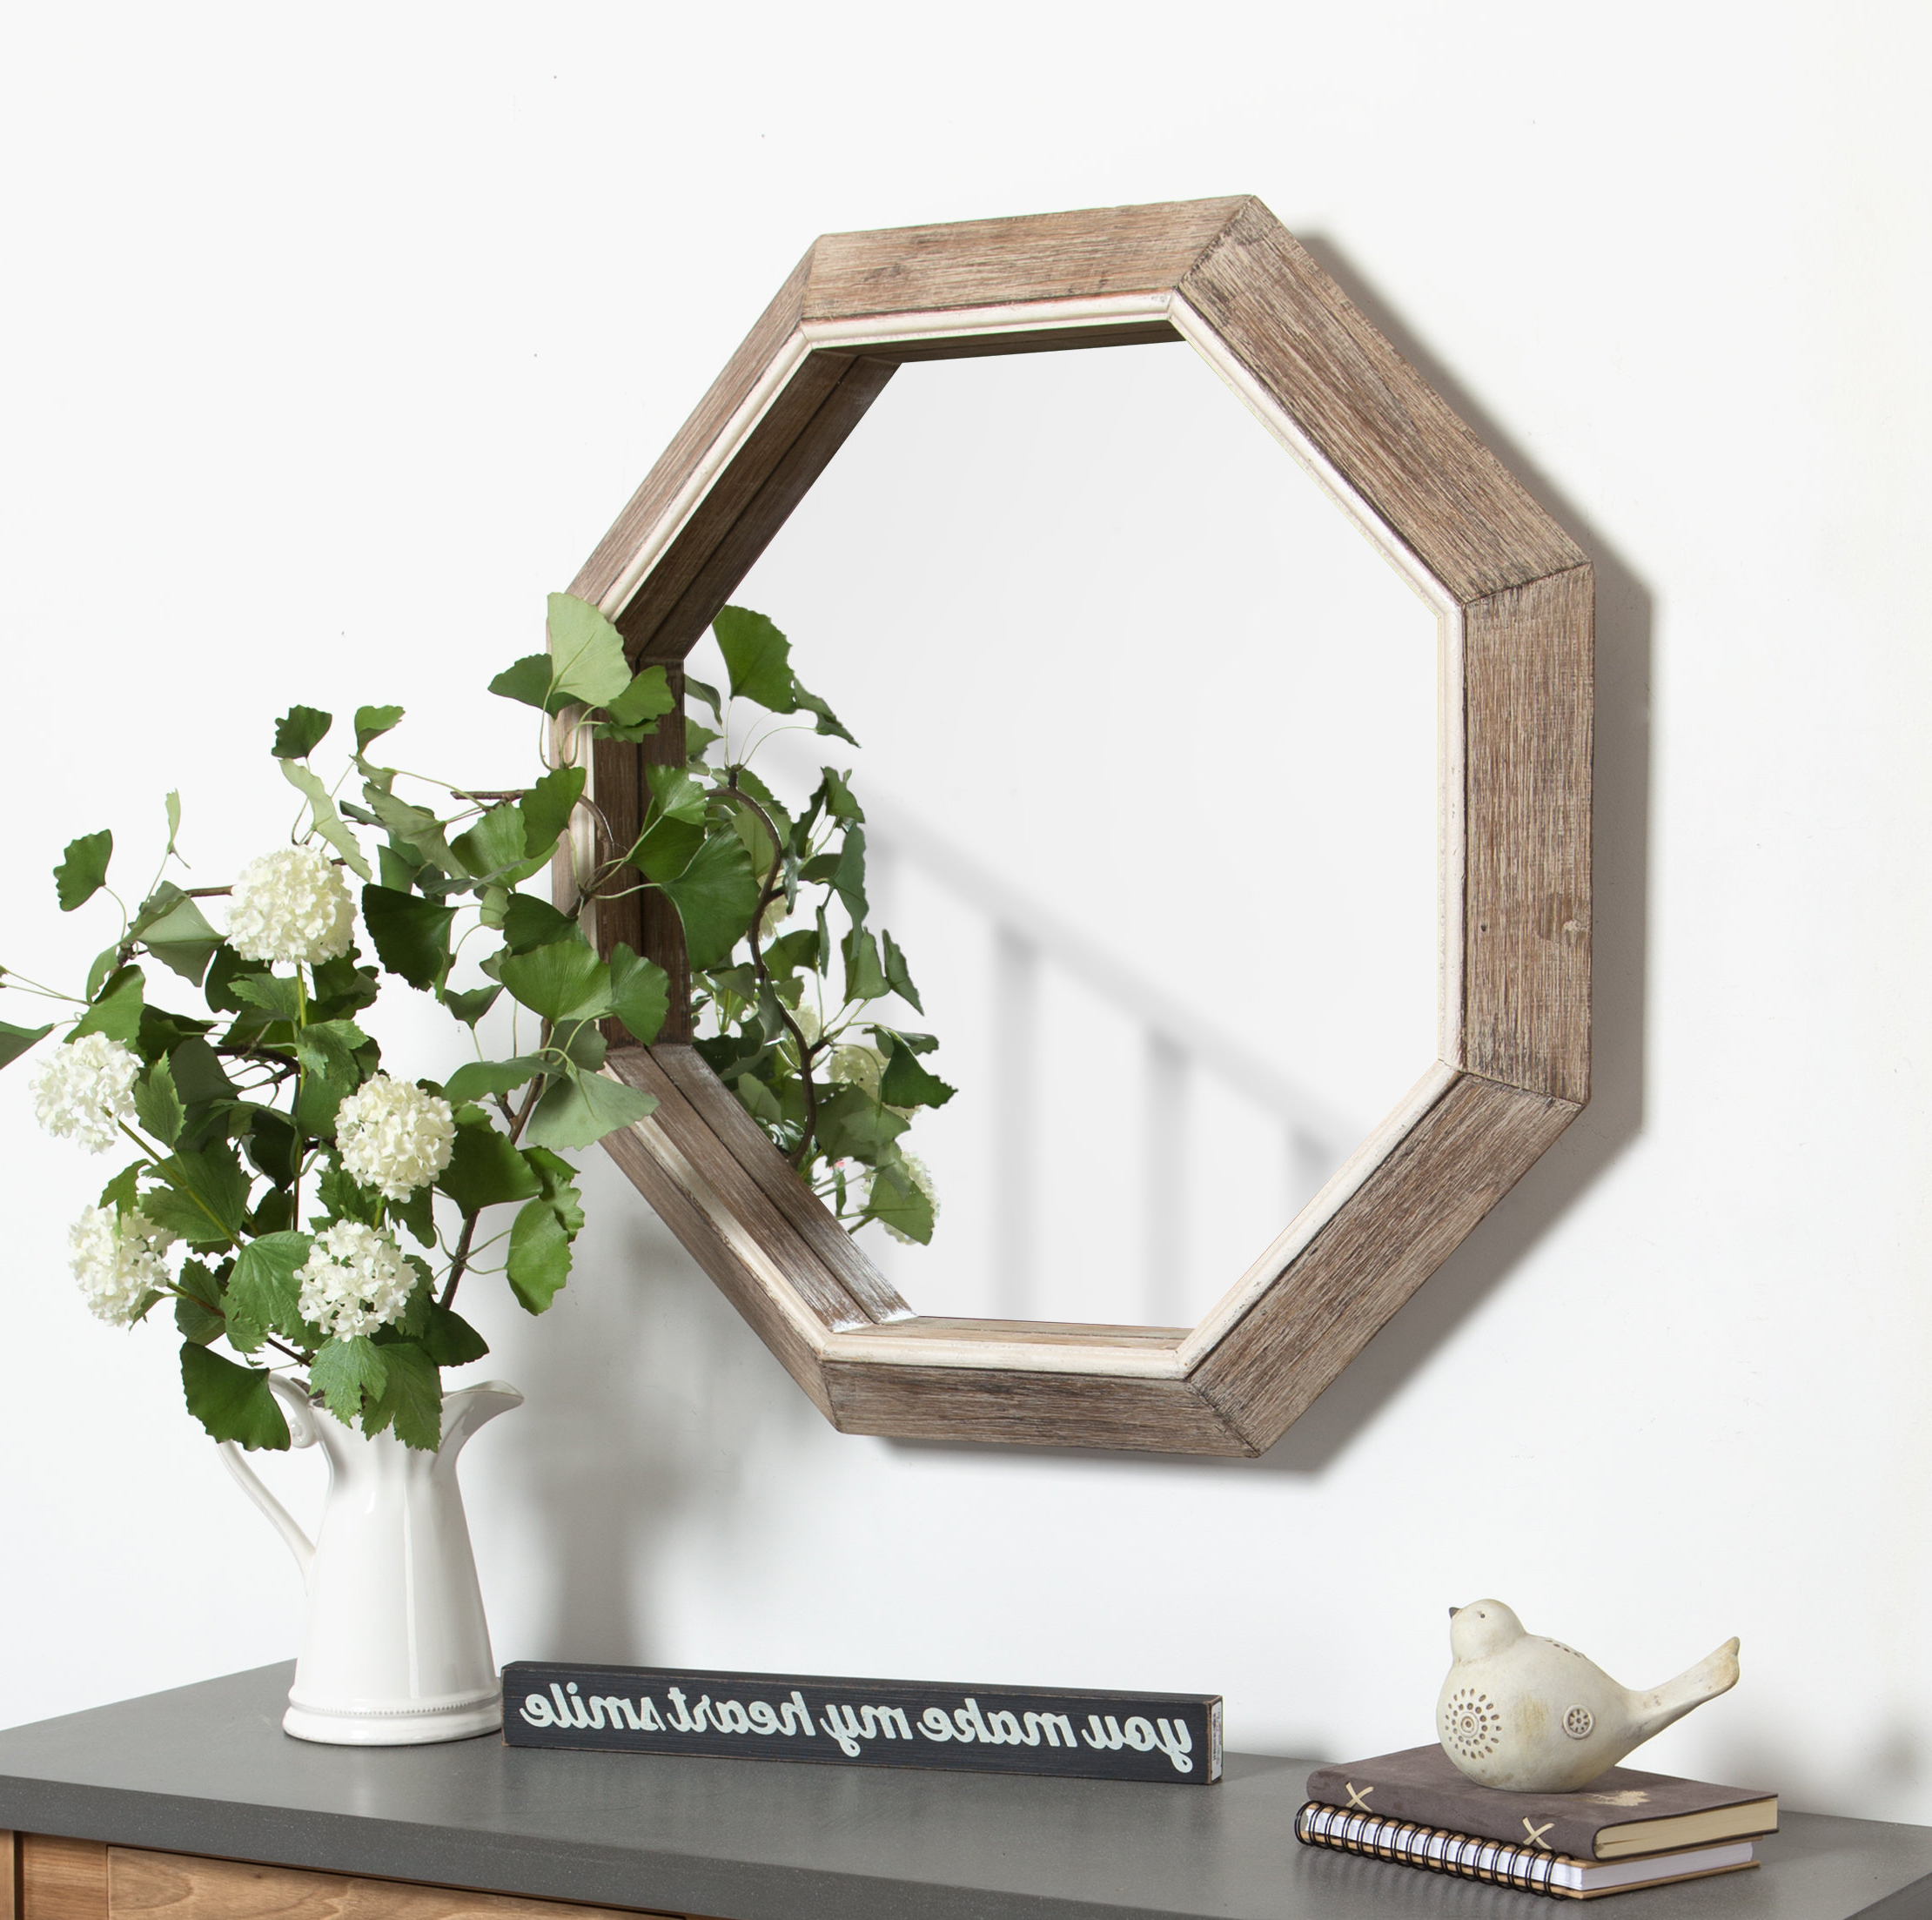 Fashionable Coldfield Large Wooden Octagon Wall Mirror For Large Wood Wall Mirrors (View 6 of 20)